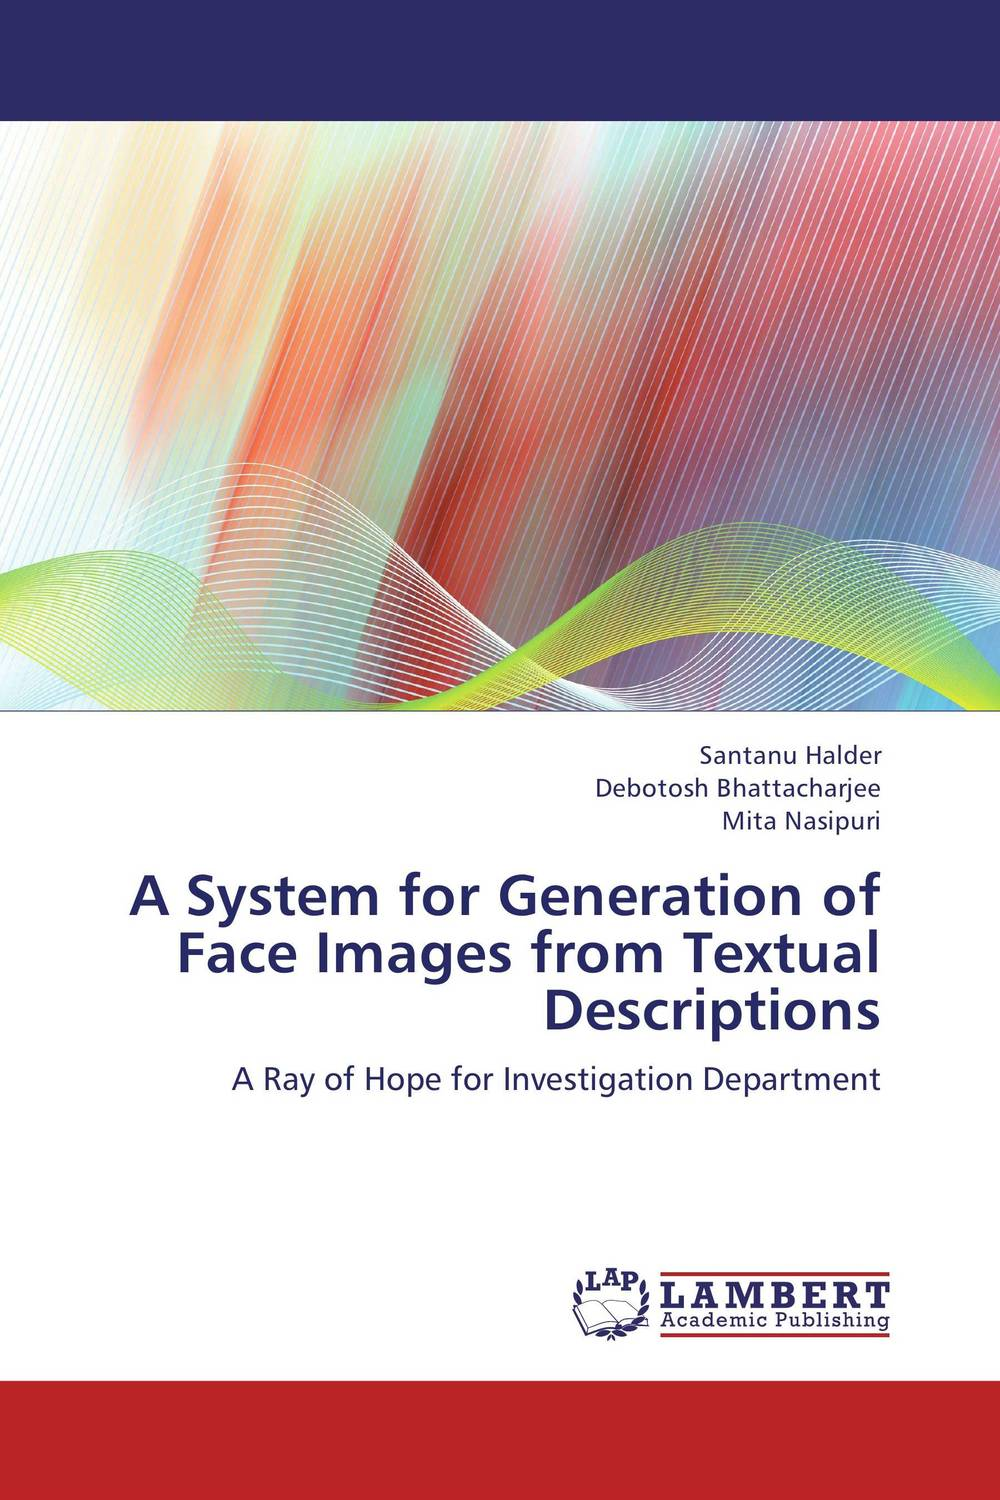 A System for Generation of Face Images from Textual Descriptions a system for generation of face images from textual descriptions